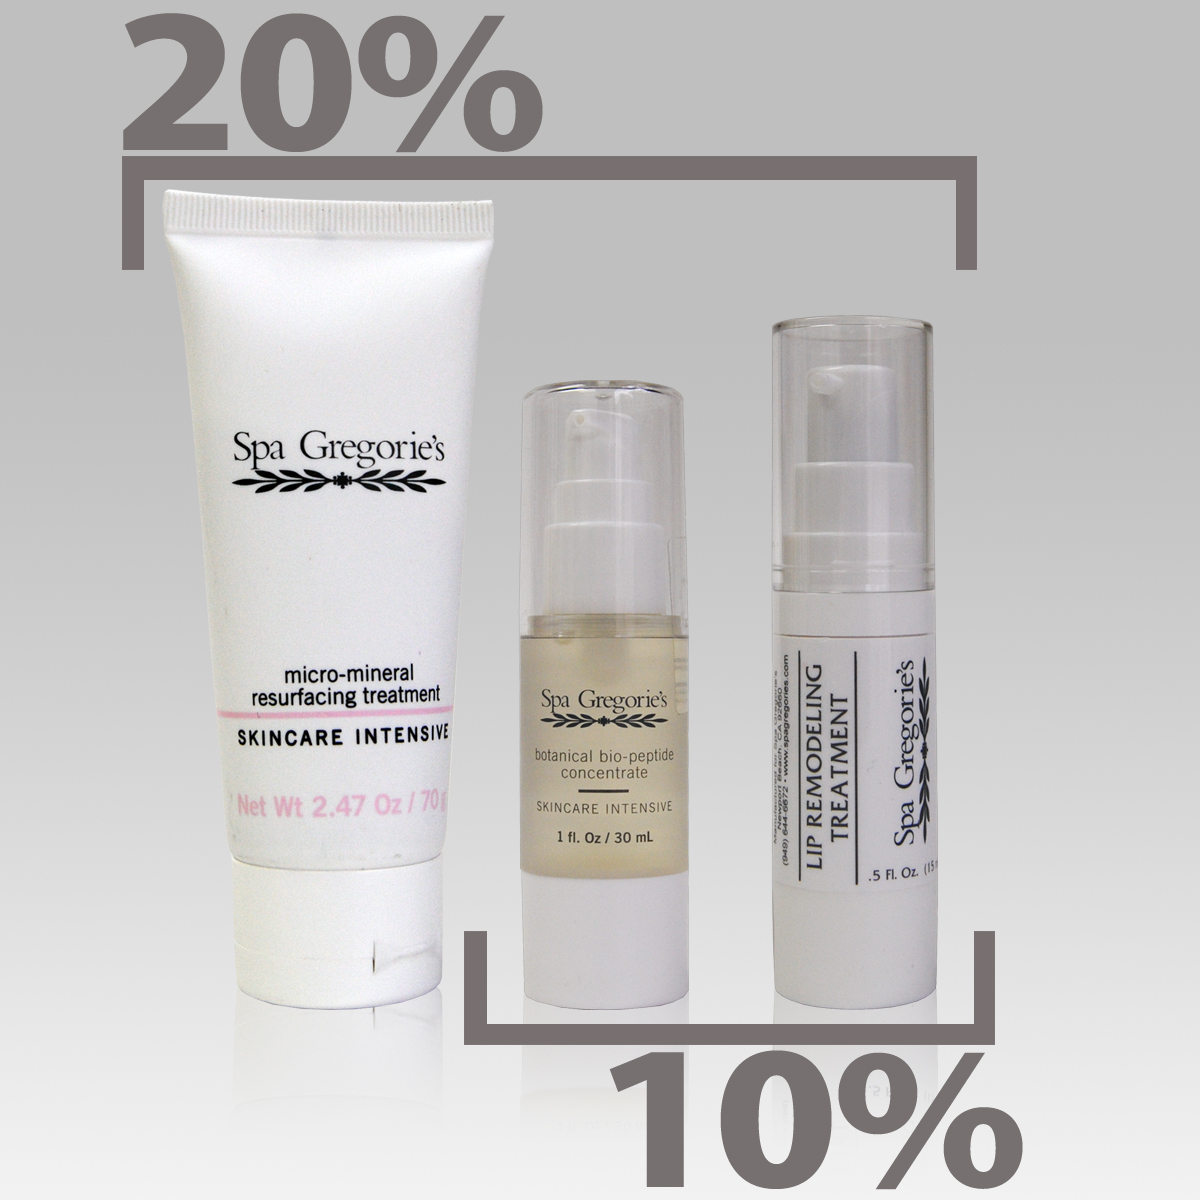 Image of 3 spa gregorie's products. 2 products 10% off, 3 products 20% off.